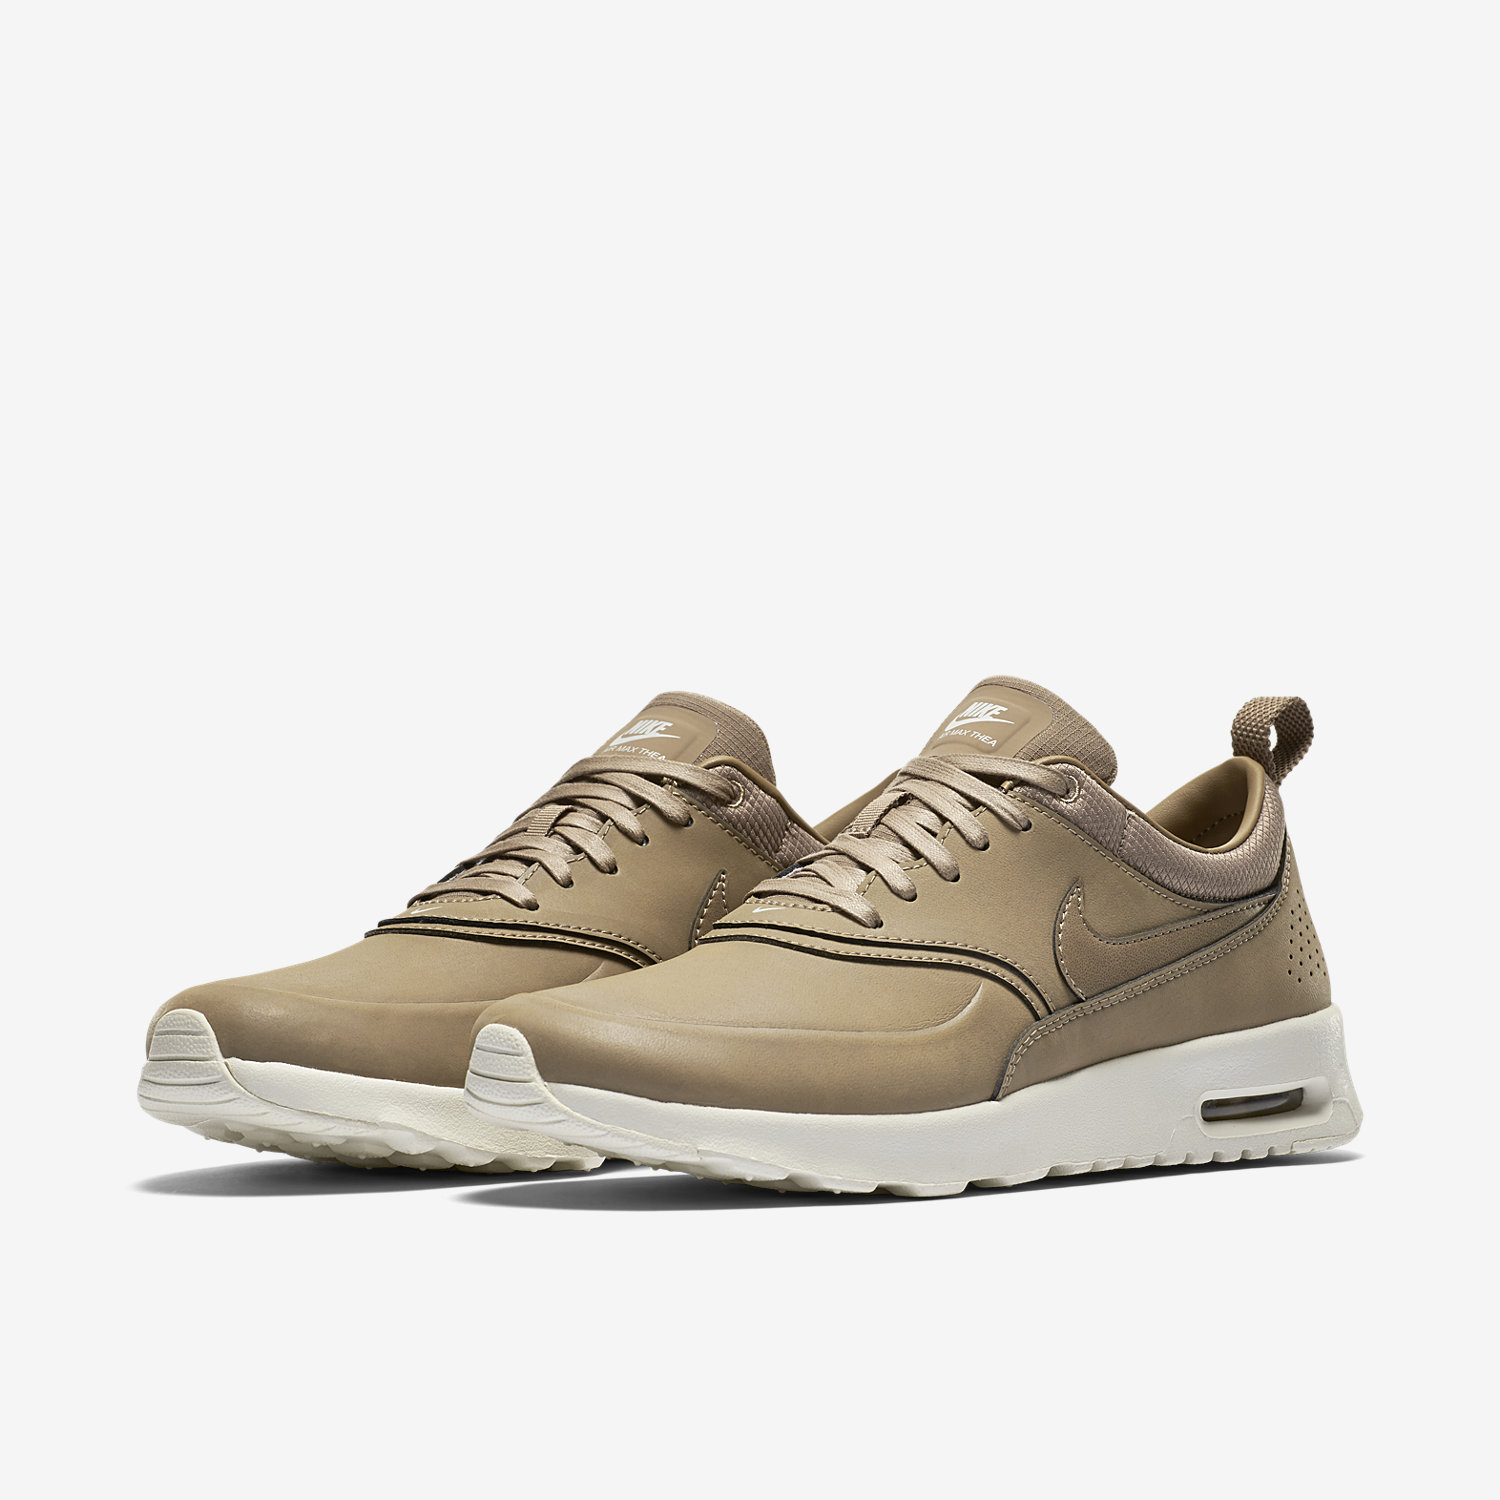 nike air max thea khaki womens. Black Bedroom Furniture Sets. Home Design Ideas